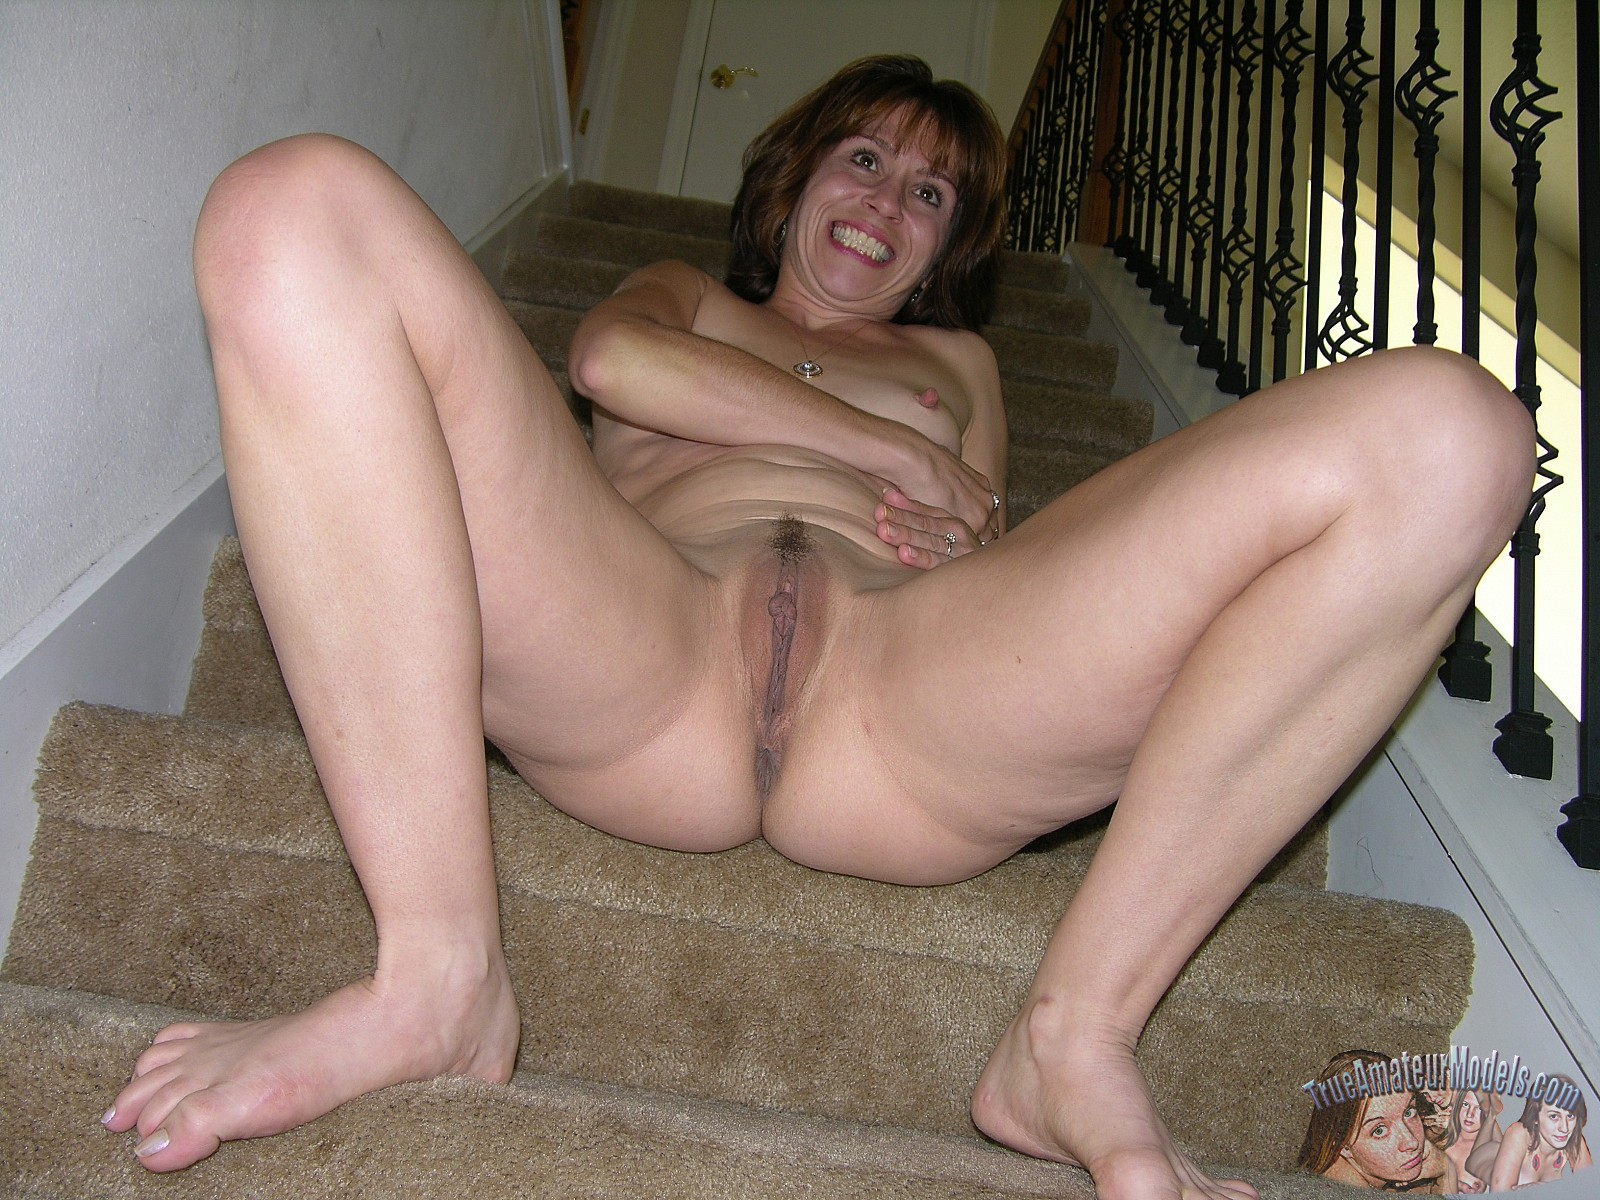 Think, that hot sexy nude amateur milf with you